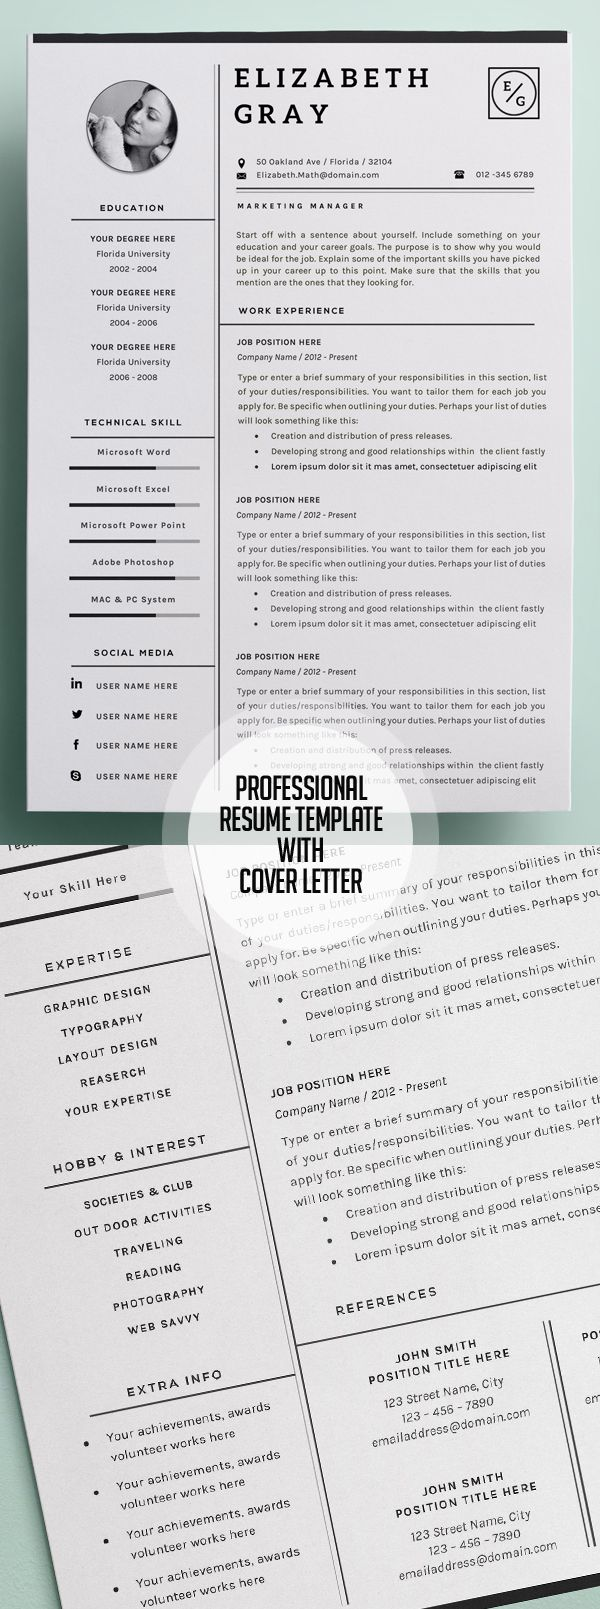 Opposenewapstandardsus  Pleasing  Resume Ideas On Pinterest  Resume Resume Templates And  With Extraordinary Professional And Modern Resume Template With Page Cover Cvtemplate With Awesome Baby Sitting Resume Also Buy Resume Templates In Addition Cosmetologist Resume Template And Summary On Resume Examples As Well As Hotel Housekeeping Resume Additionally Real Estate Paralegal Resume From Pinterestcom With Opposenewapstandardsus  Extraordinary  Resume Ideas On Pinterest  Resume Resume Templates And  With Awesome Professional And Modern Resume Template With Page Cover Cvtemplate And Pleasing Baby Sitting Resume Also Buy Resume Templates In Addition Cosmetologist Resume Template From Pinterestcom